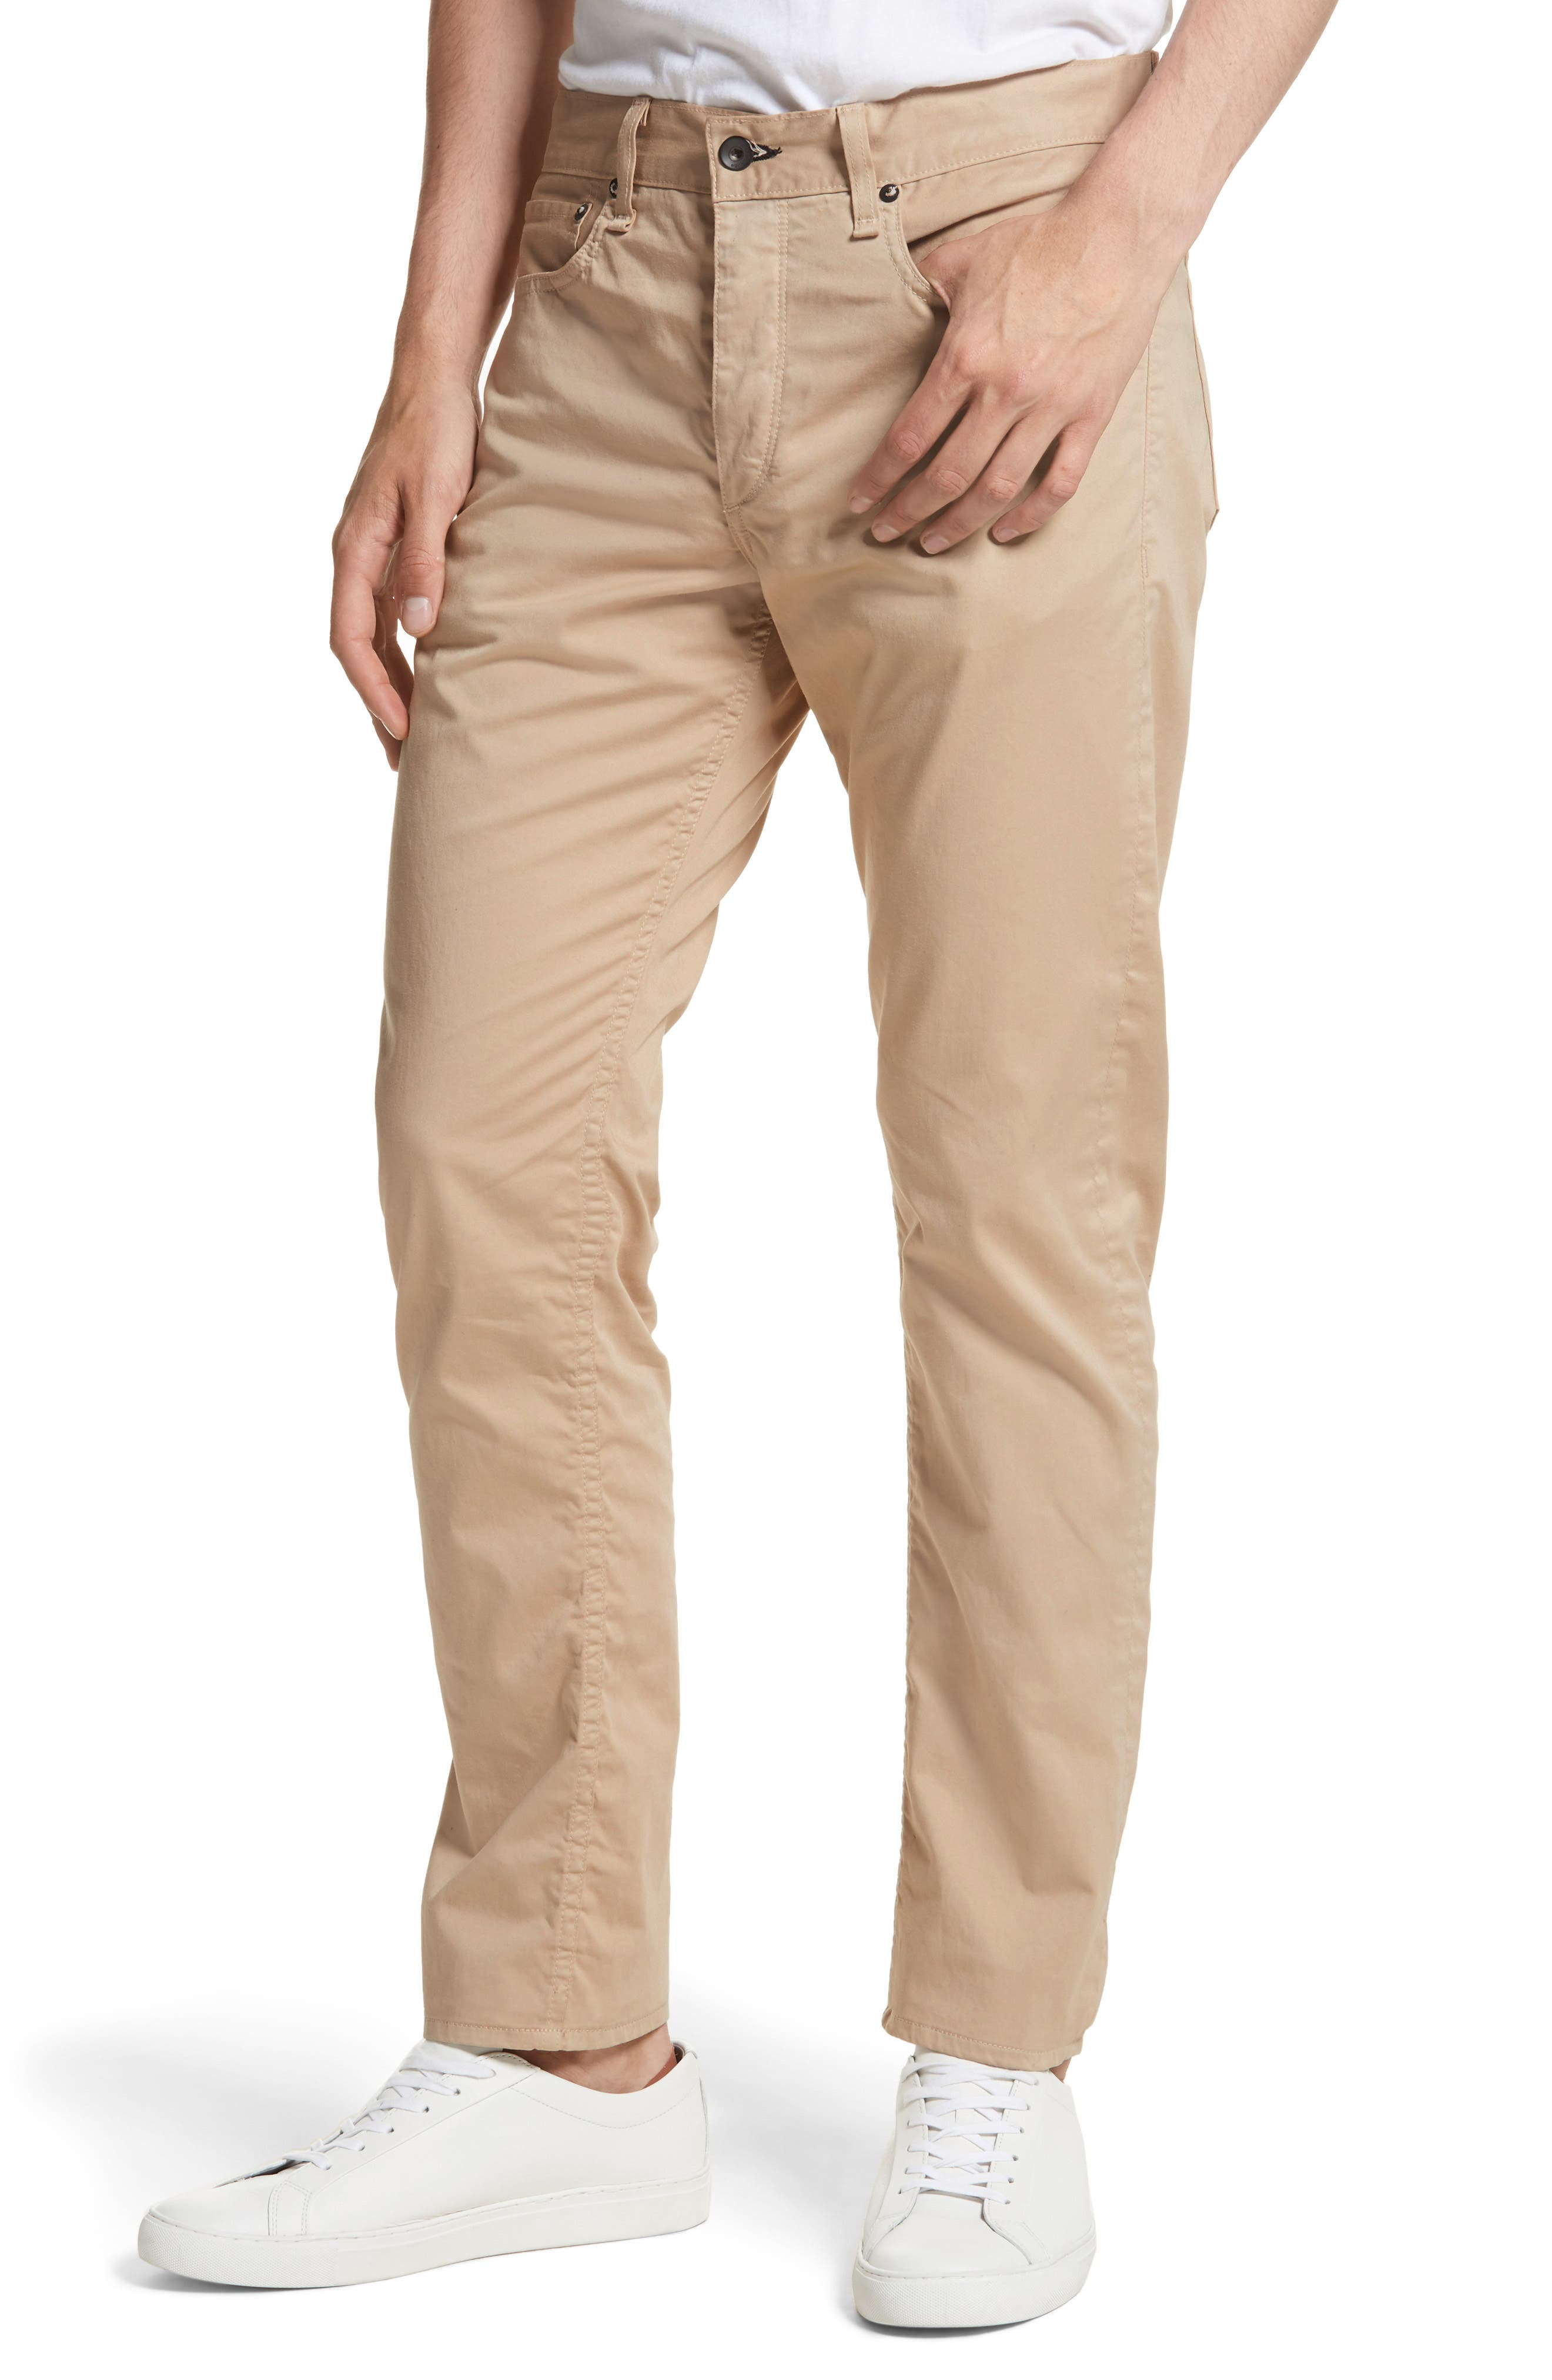 Fit 2 Five-Pocket Twill Pants,                             Alternate thumbnail 4, color,                             Beige